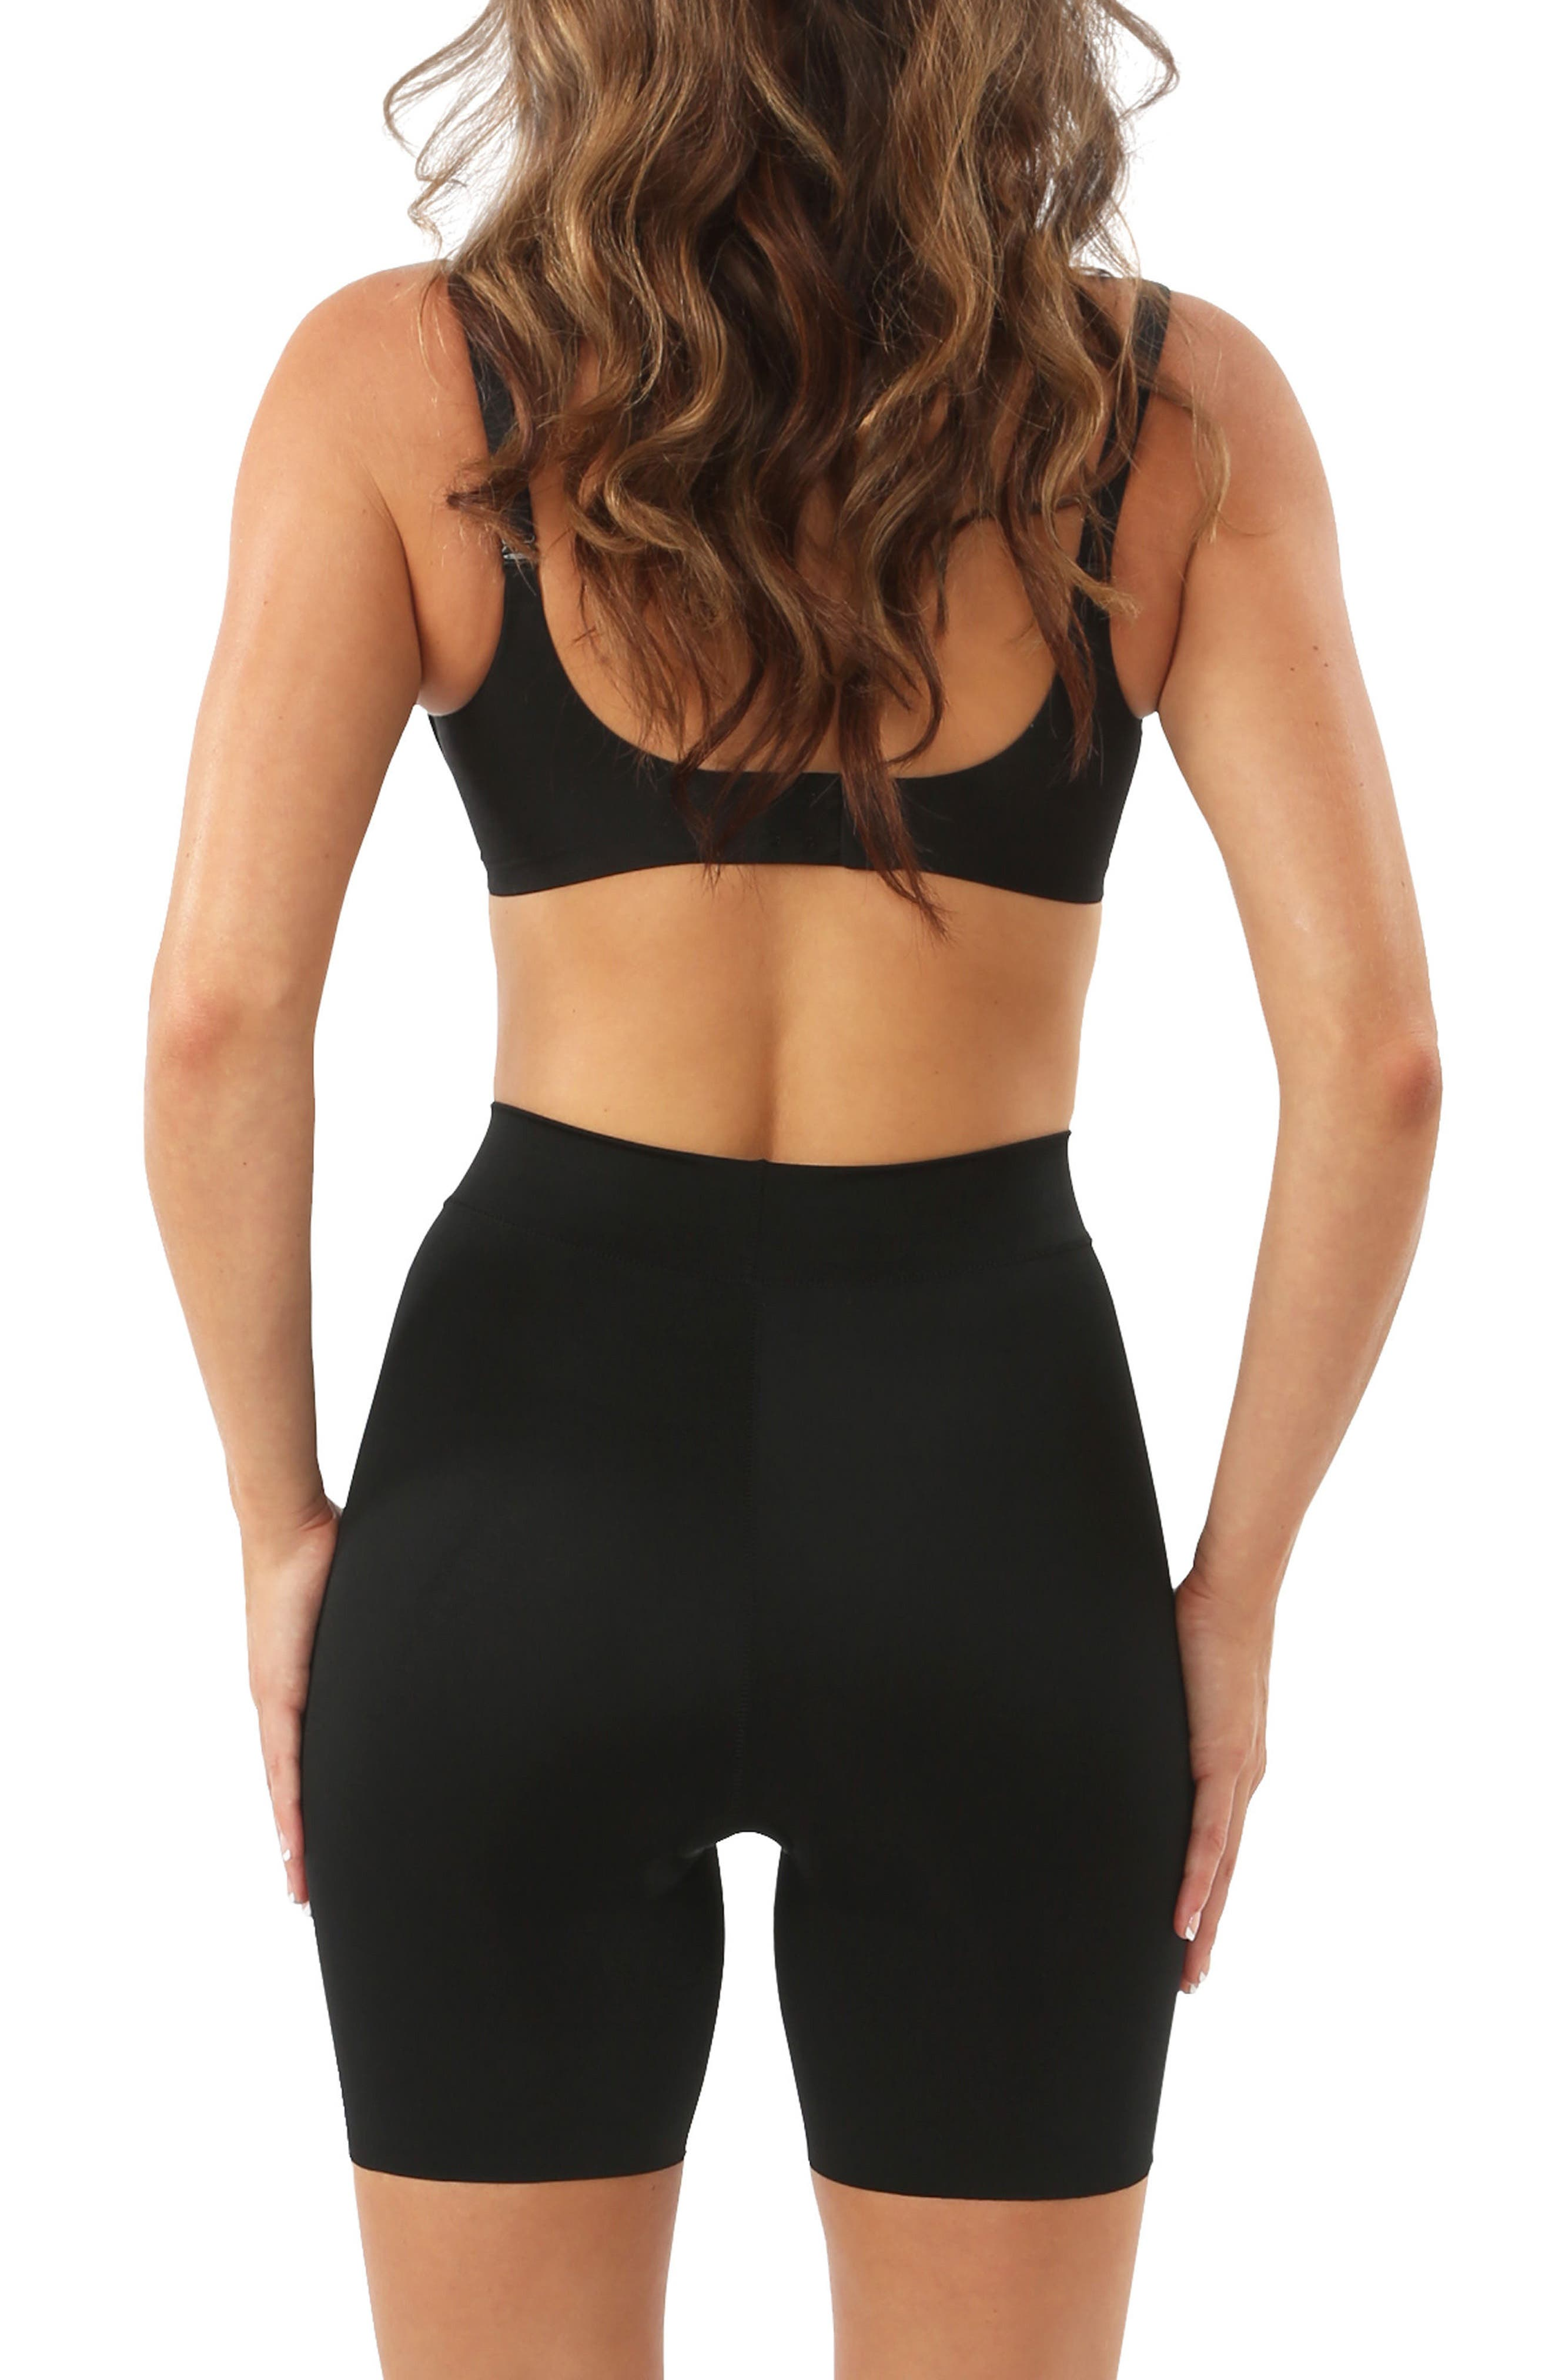 'Mother Tucker - Shortie' High Waist Compression Shorts,                             Alternate thumbnail 2, color,                             BLACK